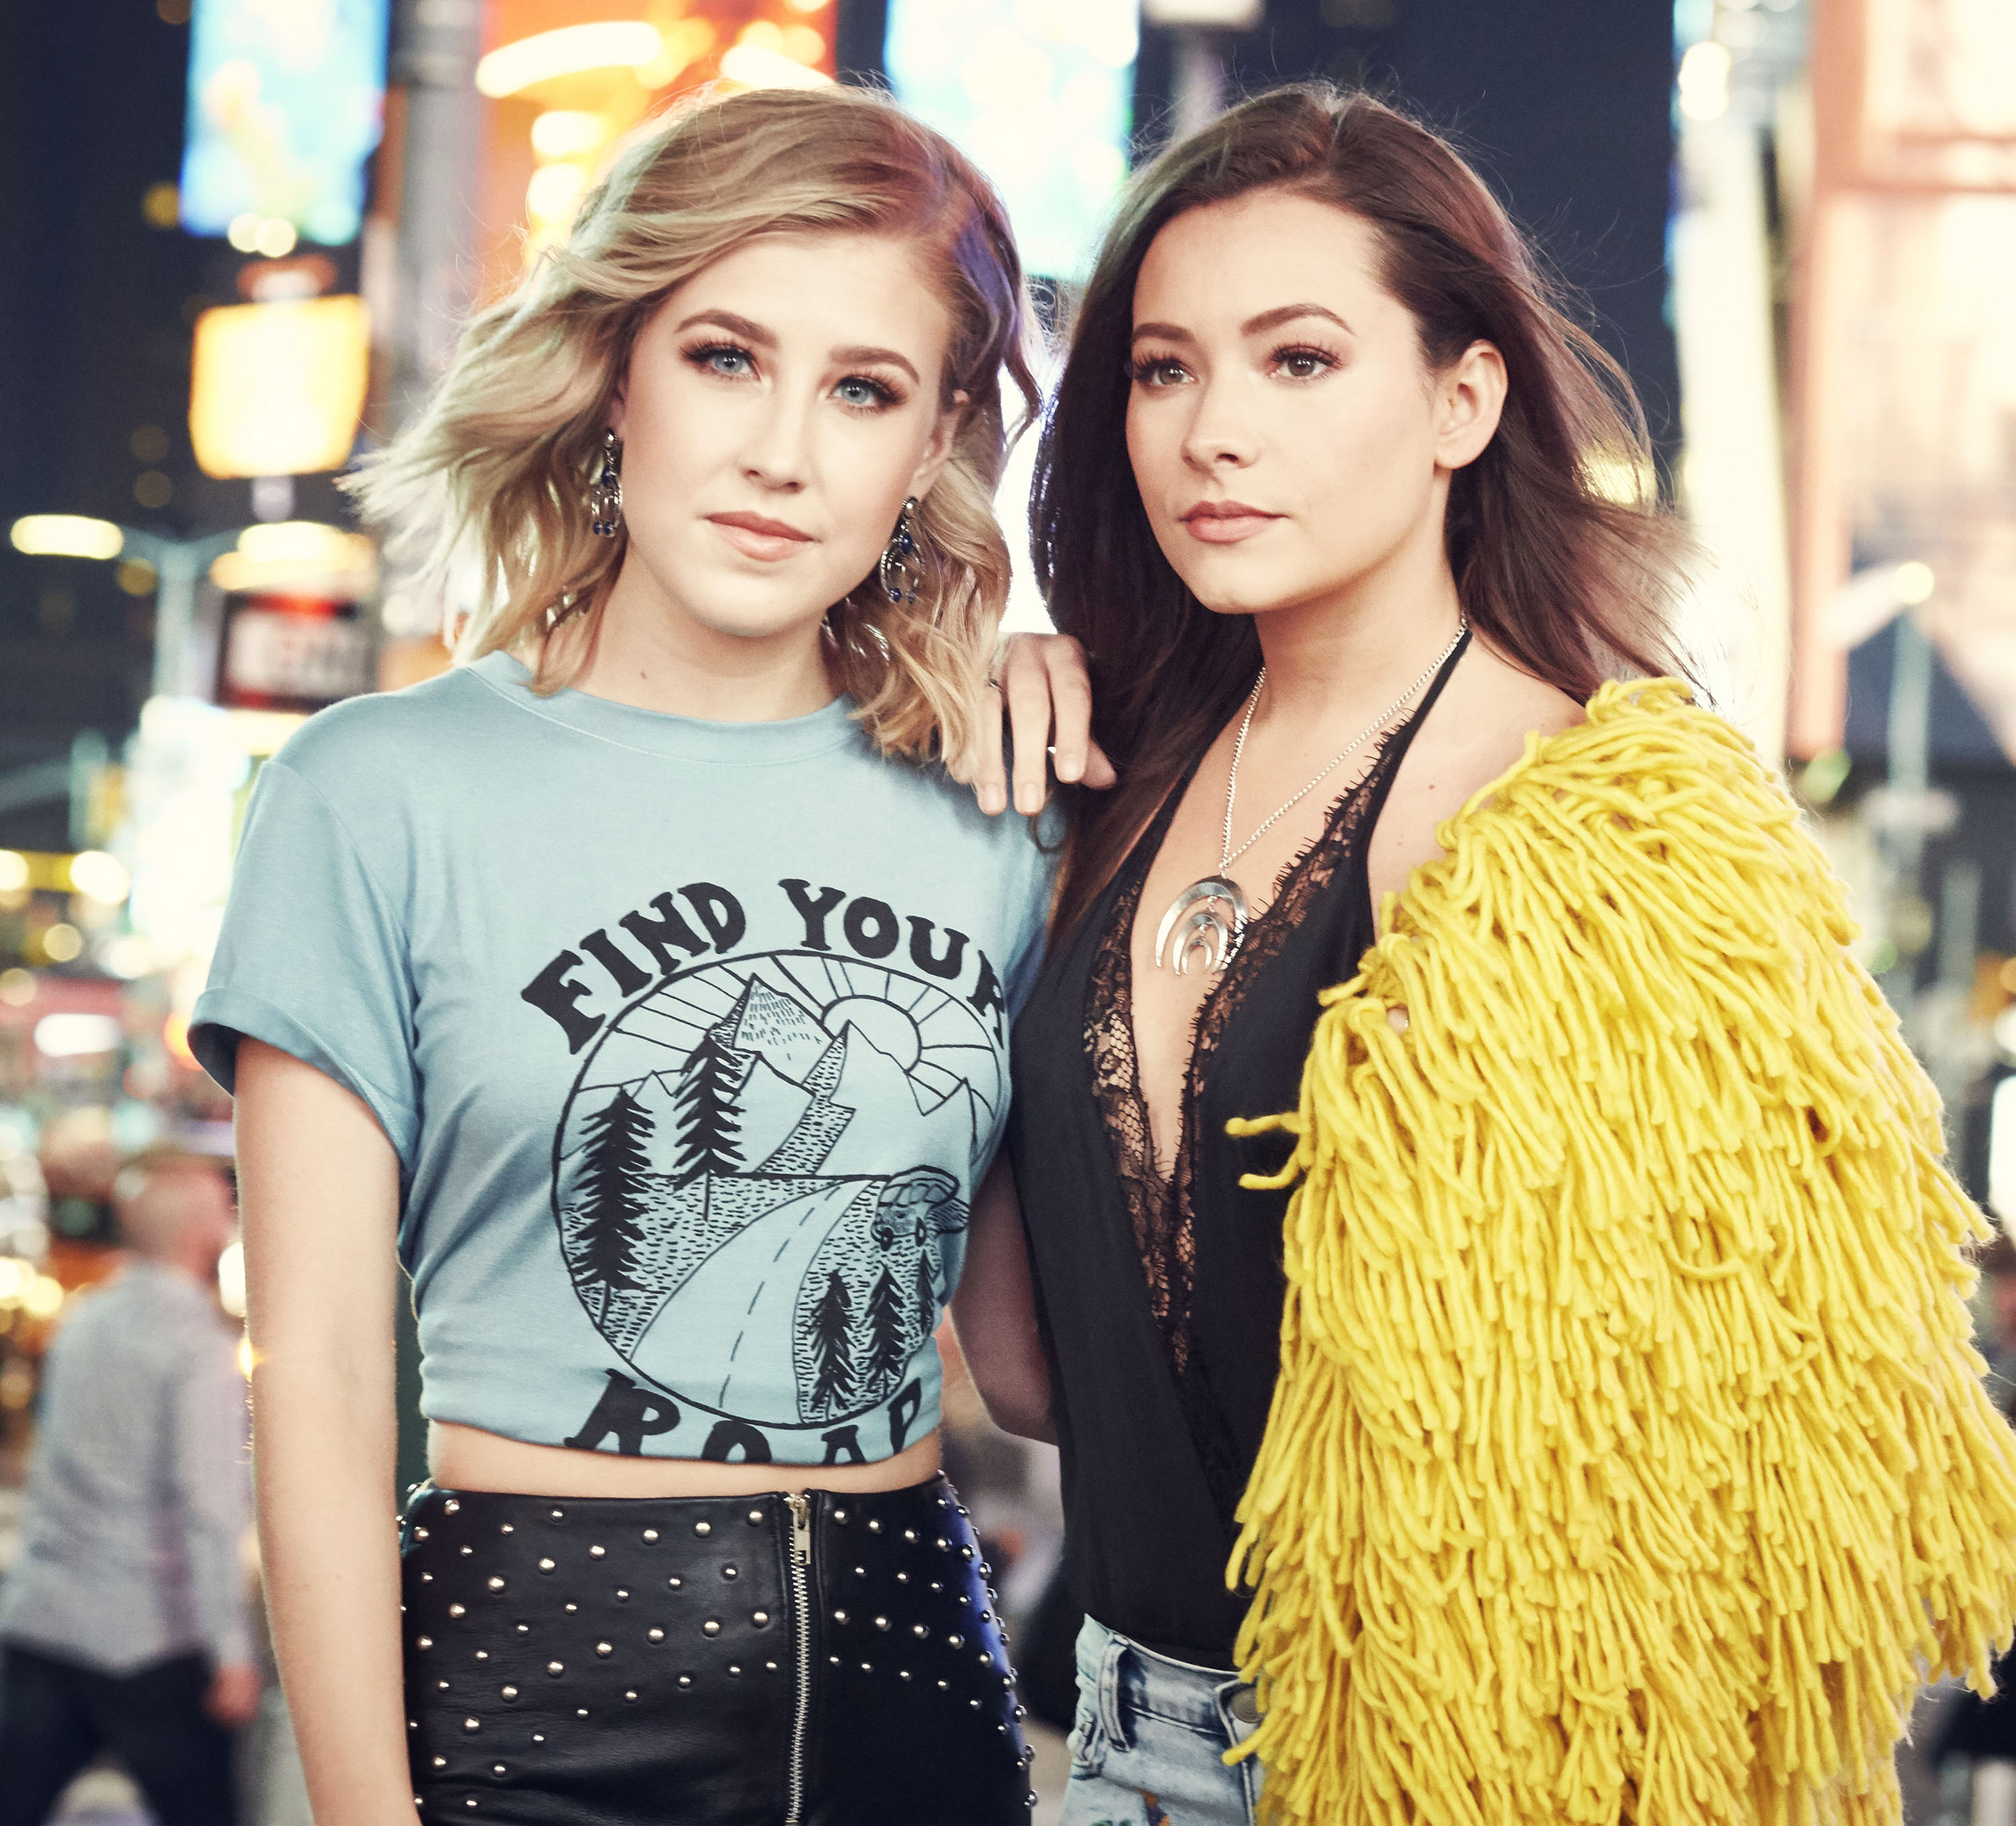 MADDIE & TAE SHARE DETAILS ABOUT THEIR NEW EP, ONE HEART TO ANOTHER, DUE APRIL 26TH.